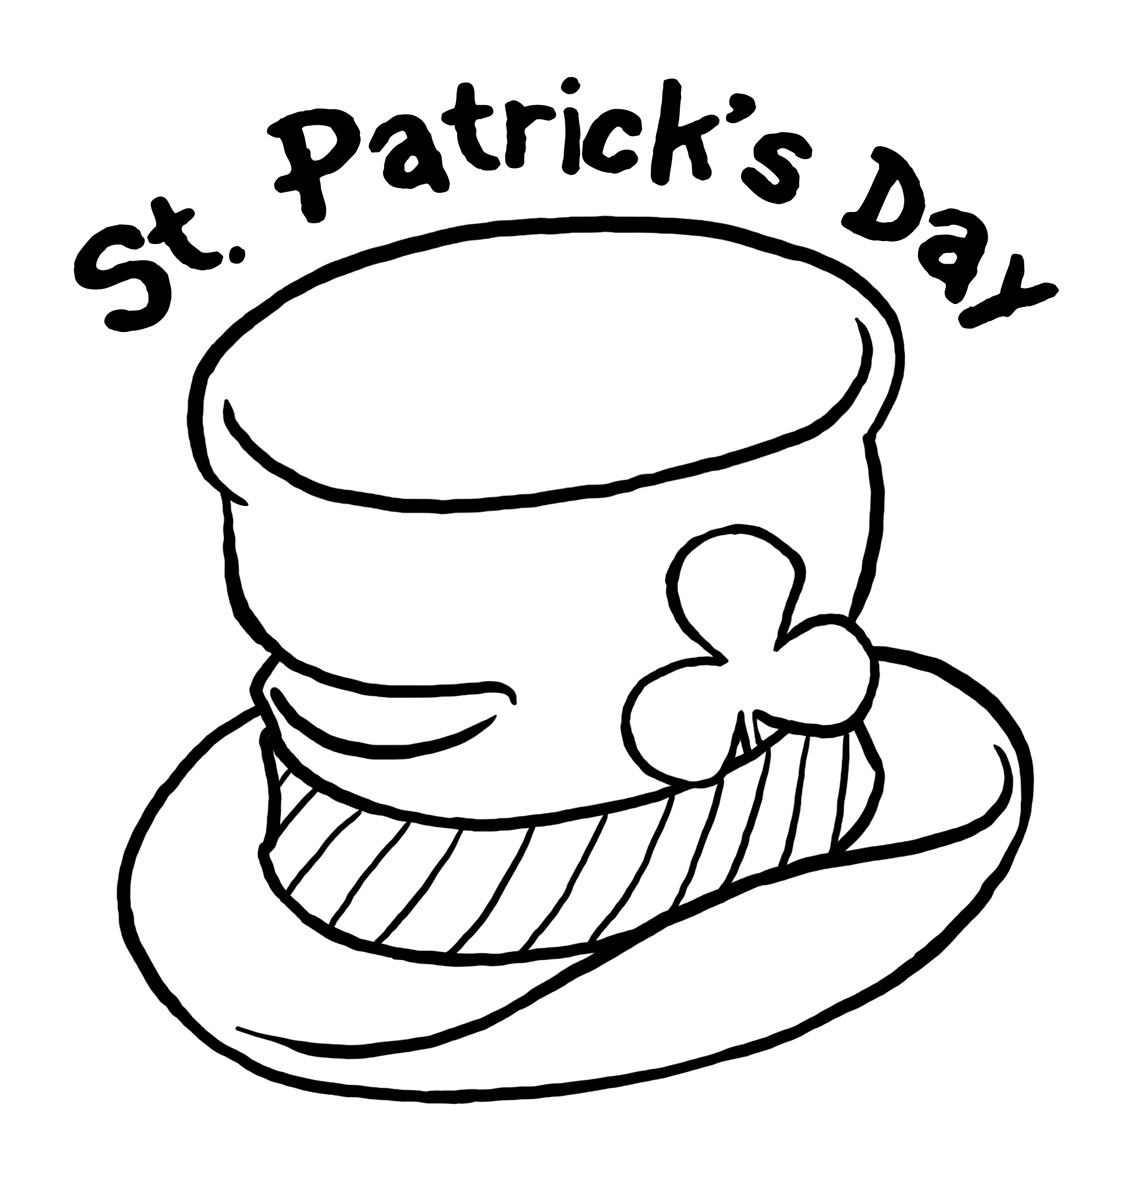 Coloring clipart st patricks day. Free drawings download clip